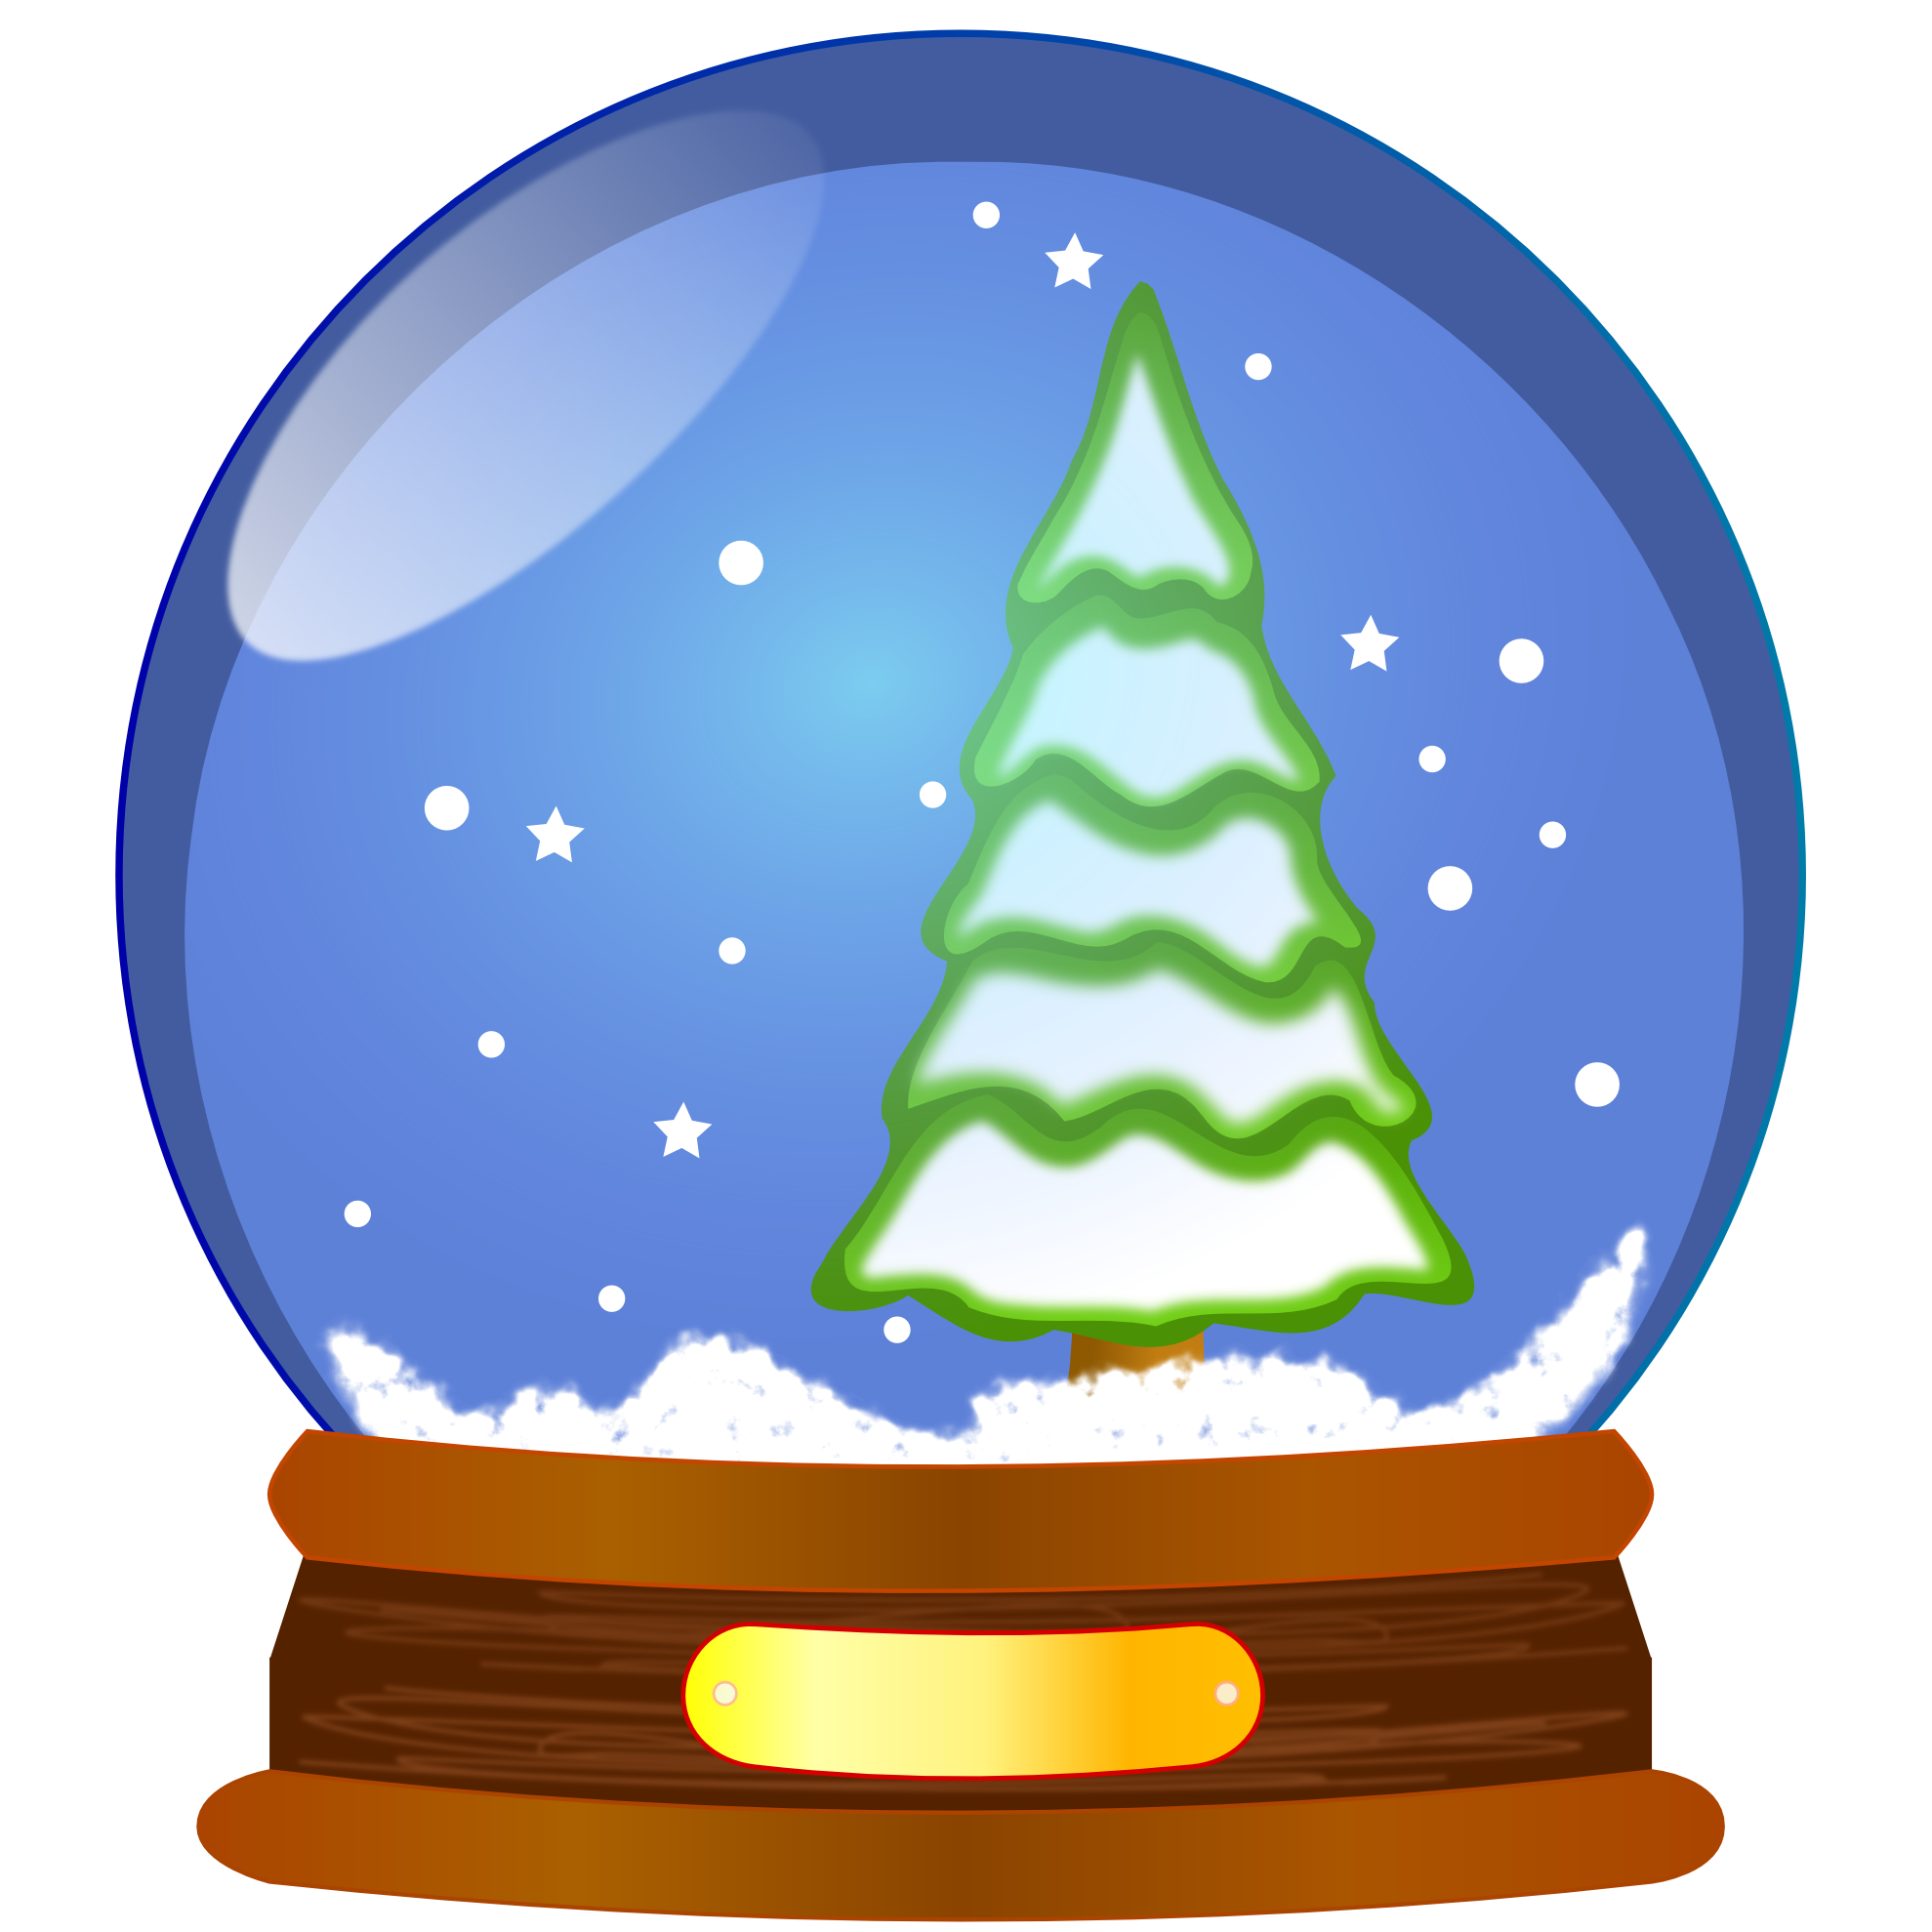 Fireplace clipart winter. Snow globe